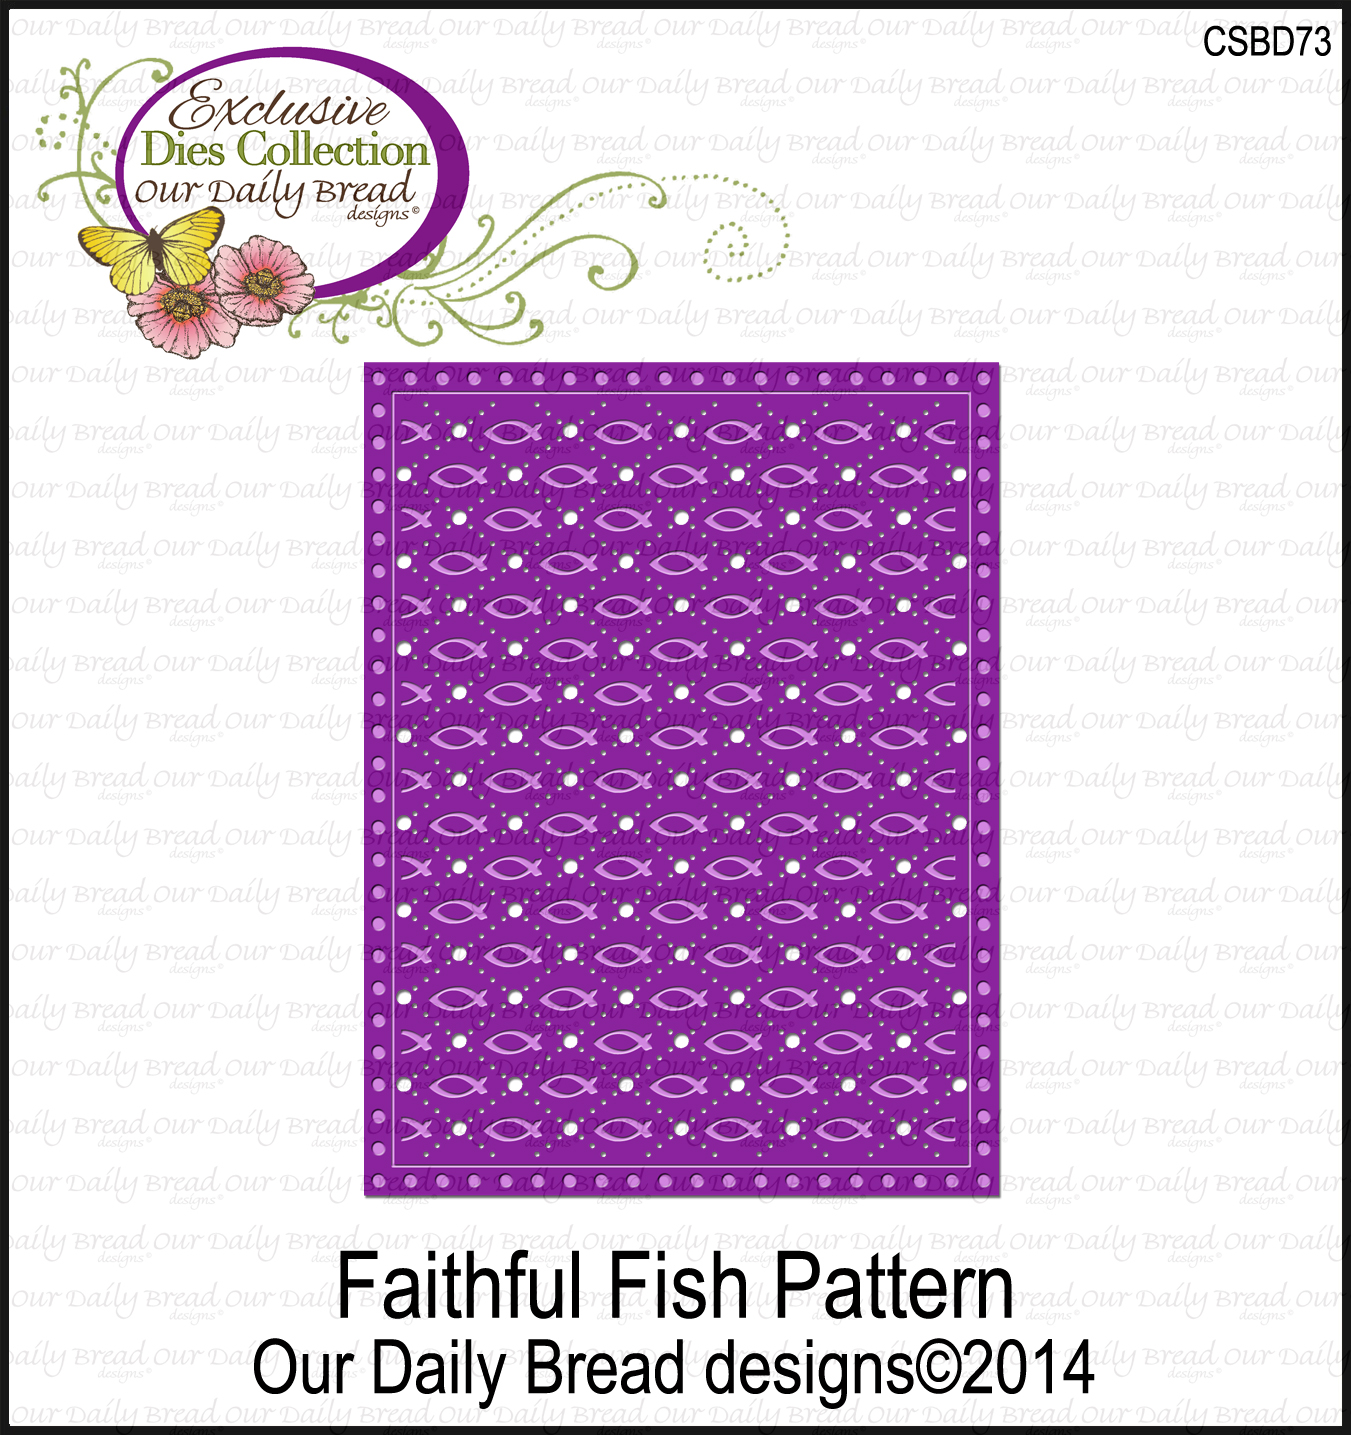 https://www.ourdailybreaddesigns.com/index.php/csbd73-faithful-fish-pattern-die-debossing-plate.html